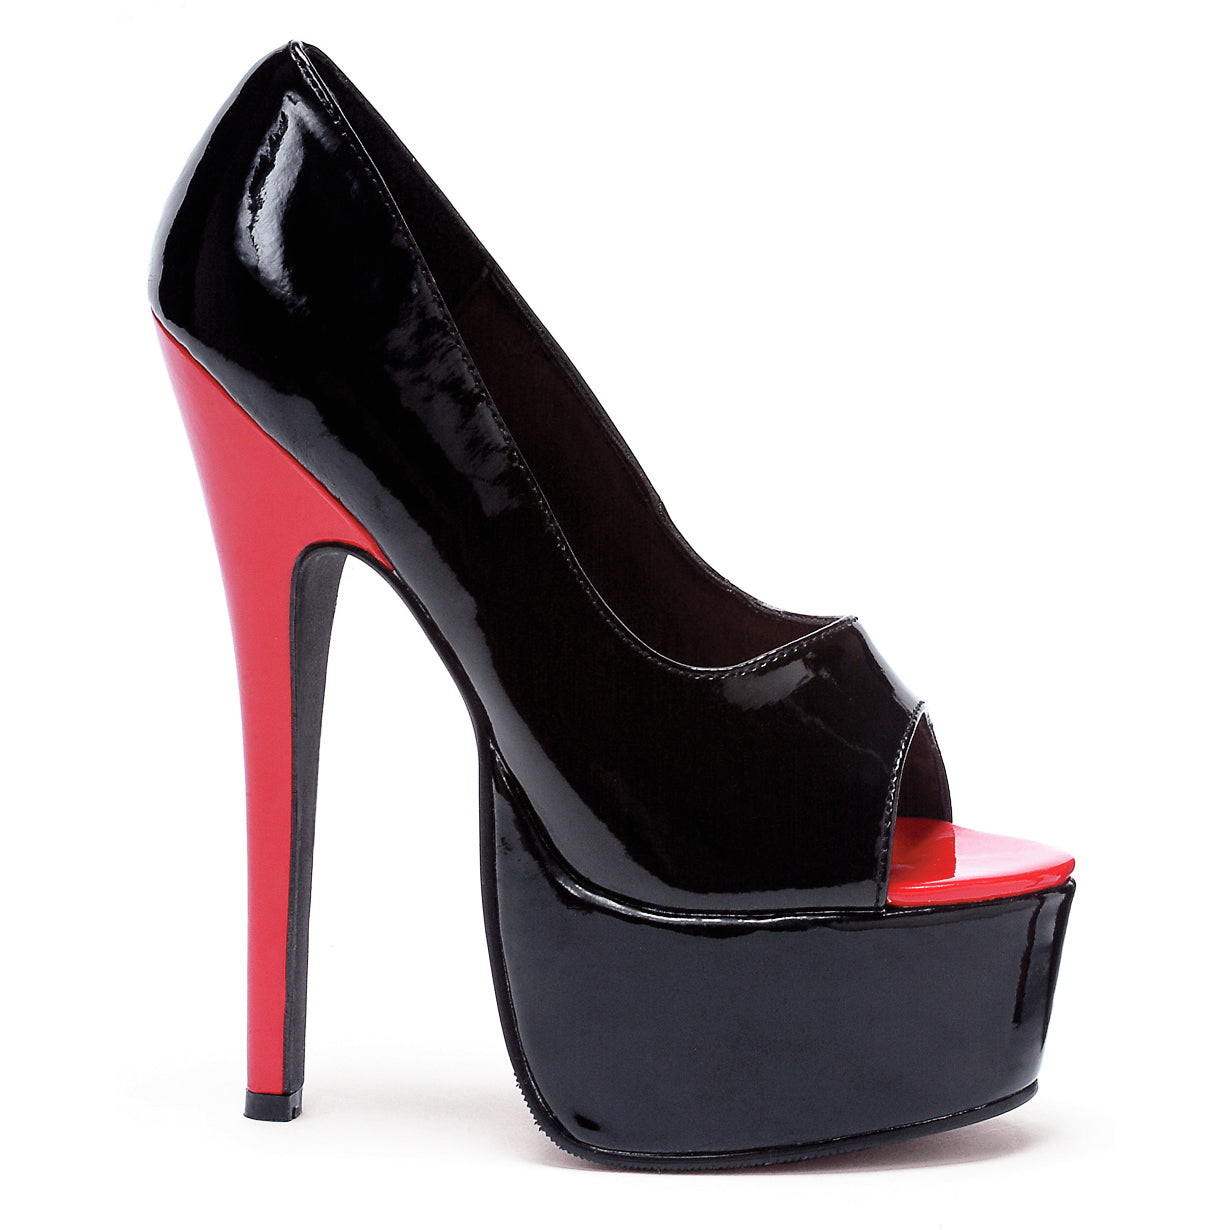 6.5 Stiletto Heel Open Toe Pump